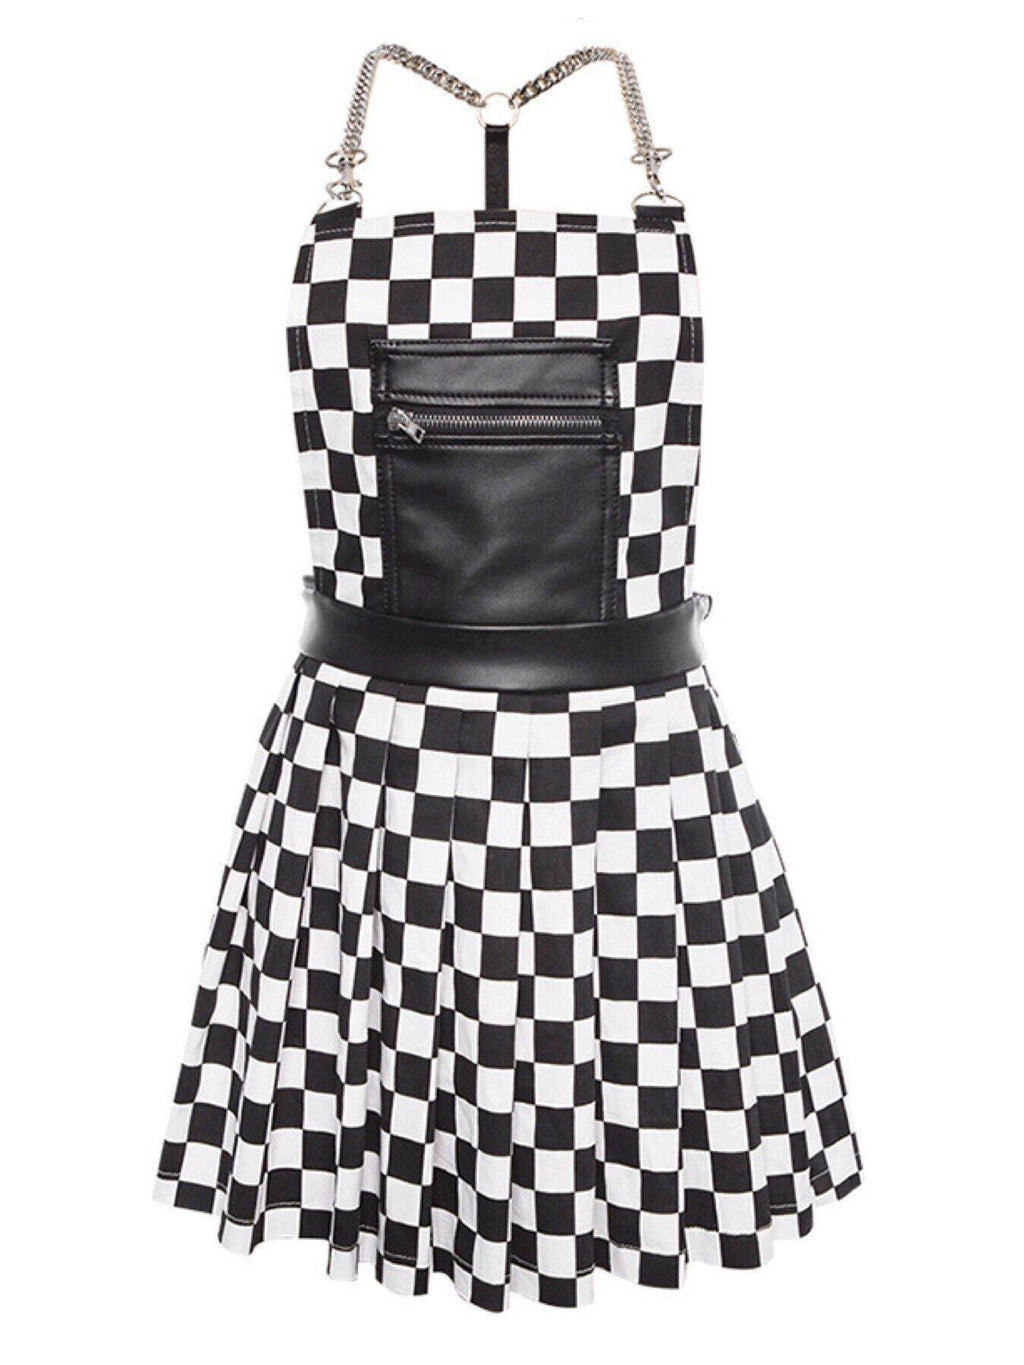 BlissGirl - Black and White Checkered Romper - S